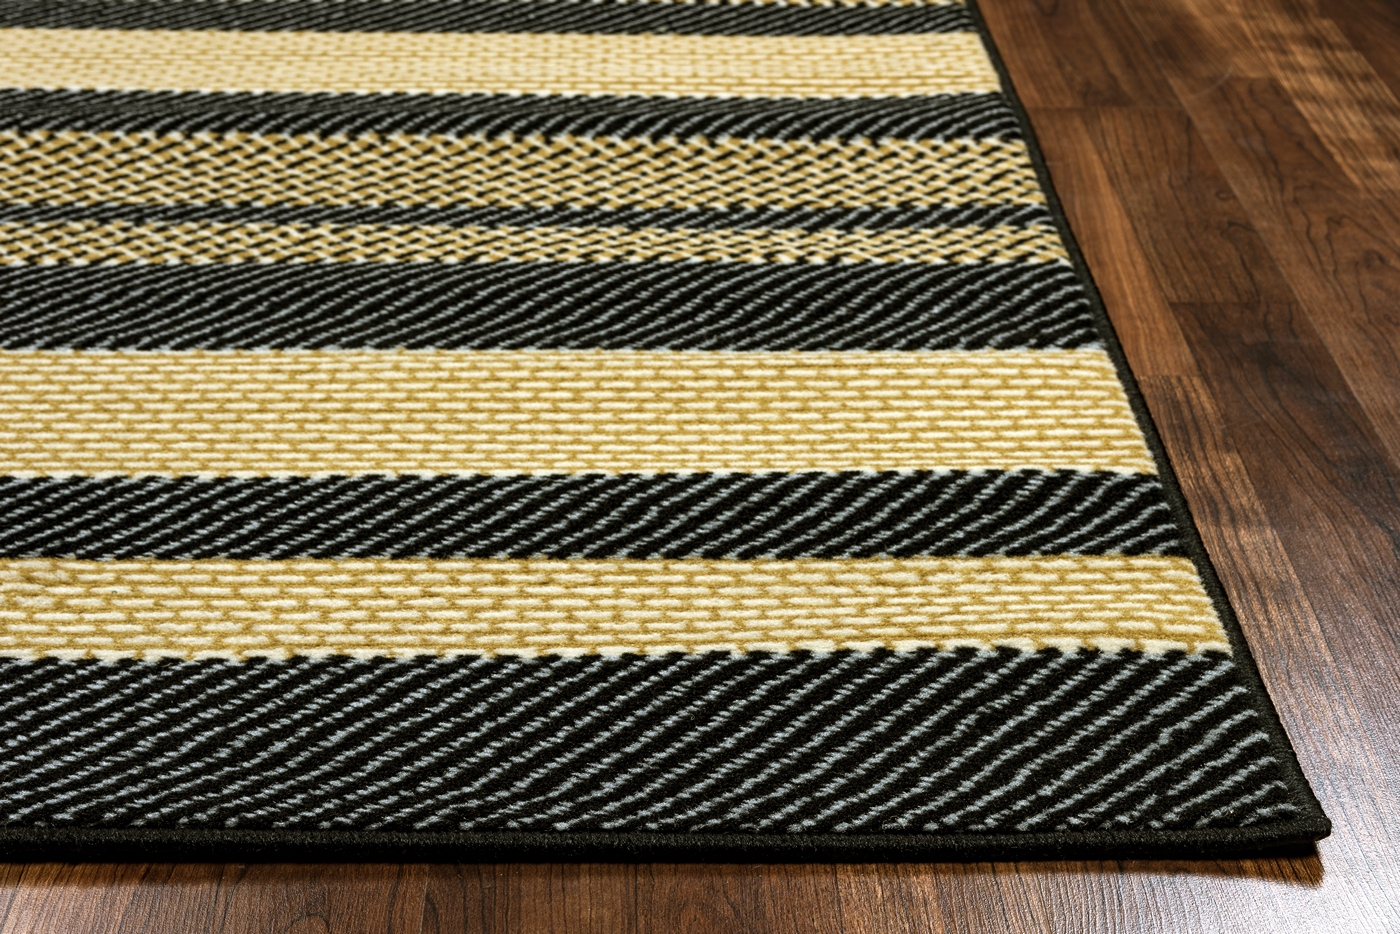 millington asymmetric stripe pattern area rug in black. Black Bedroom Furniture Sets. Home Design Ideas